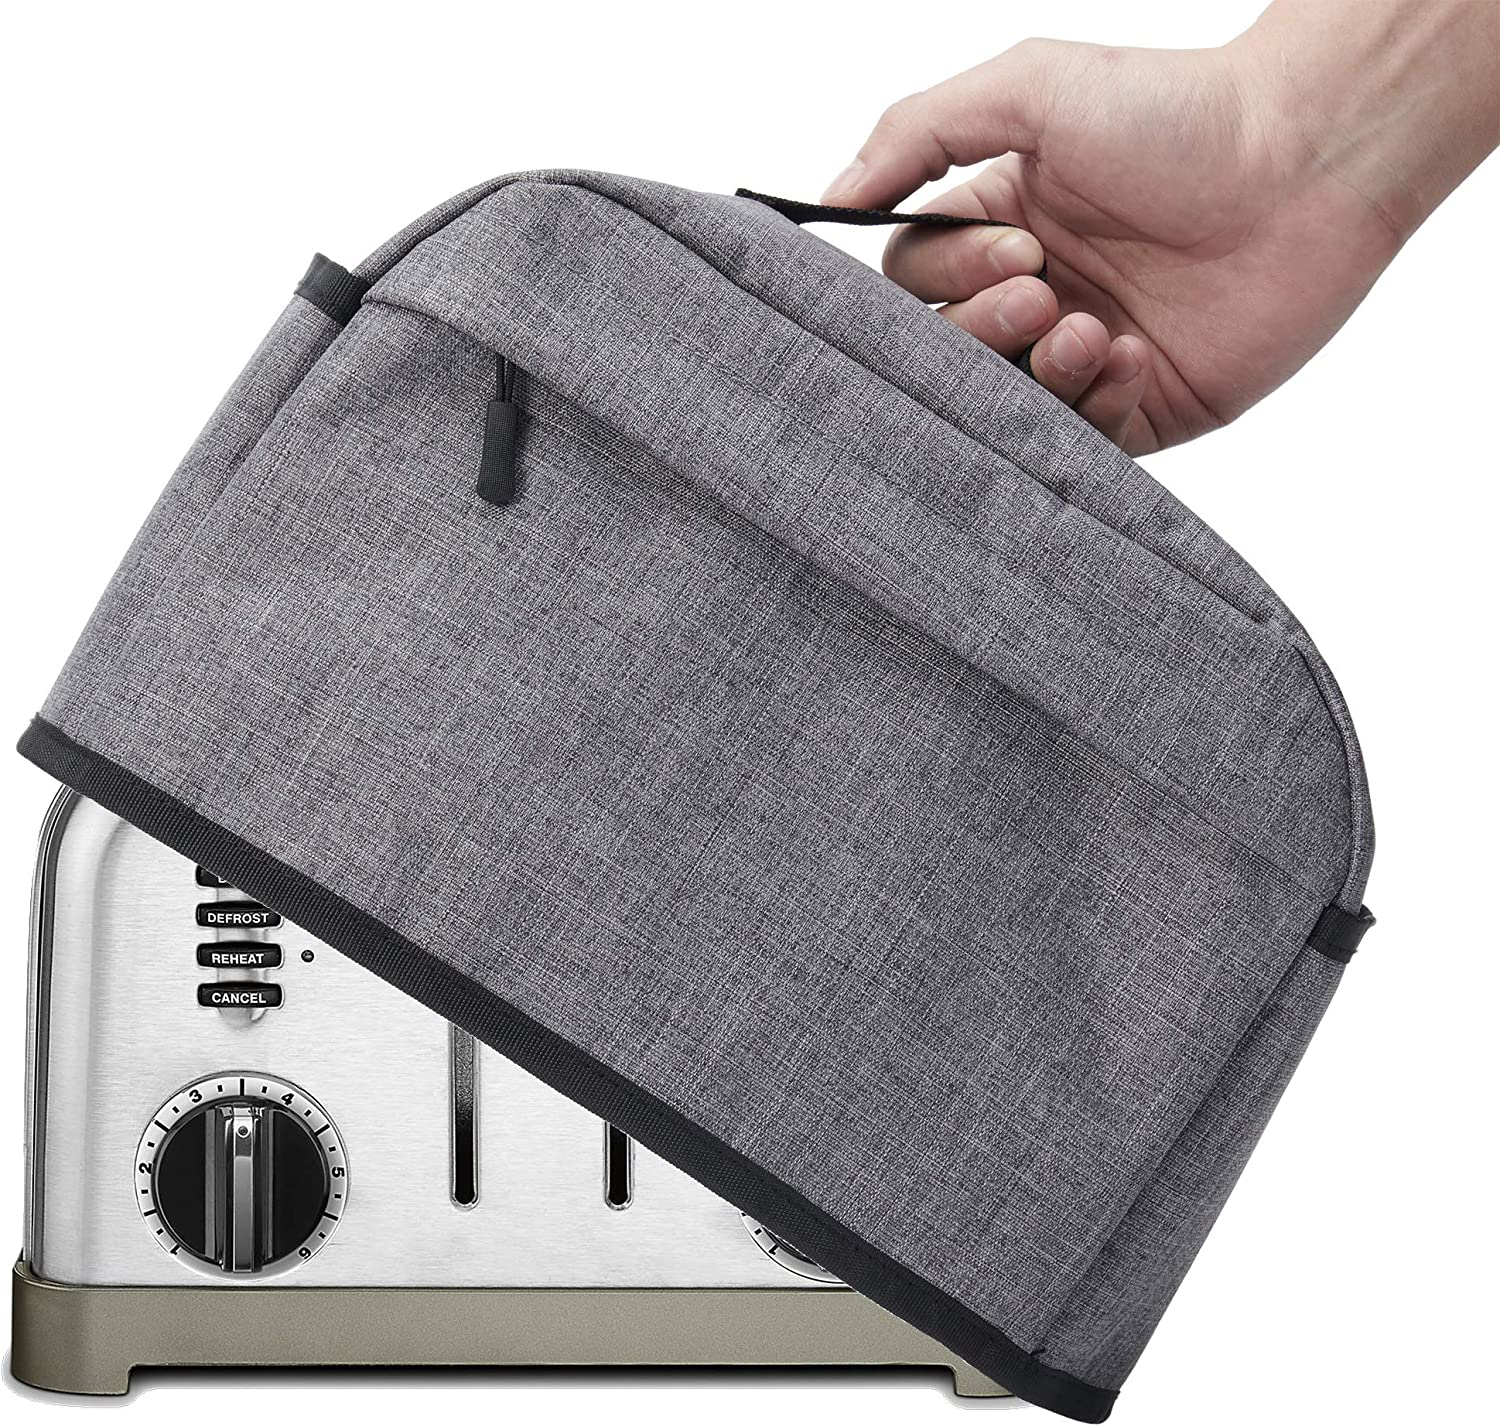 4 Slice Toaster Cover with Zipper & Open Pockets Kitchen Small Appliance Cover with Handle, Dust and Fingerprint Protection, Machine Washable, Grey